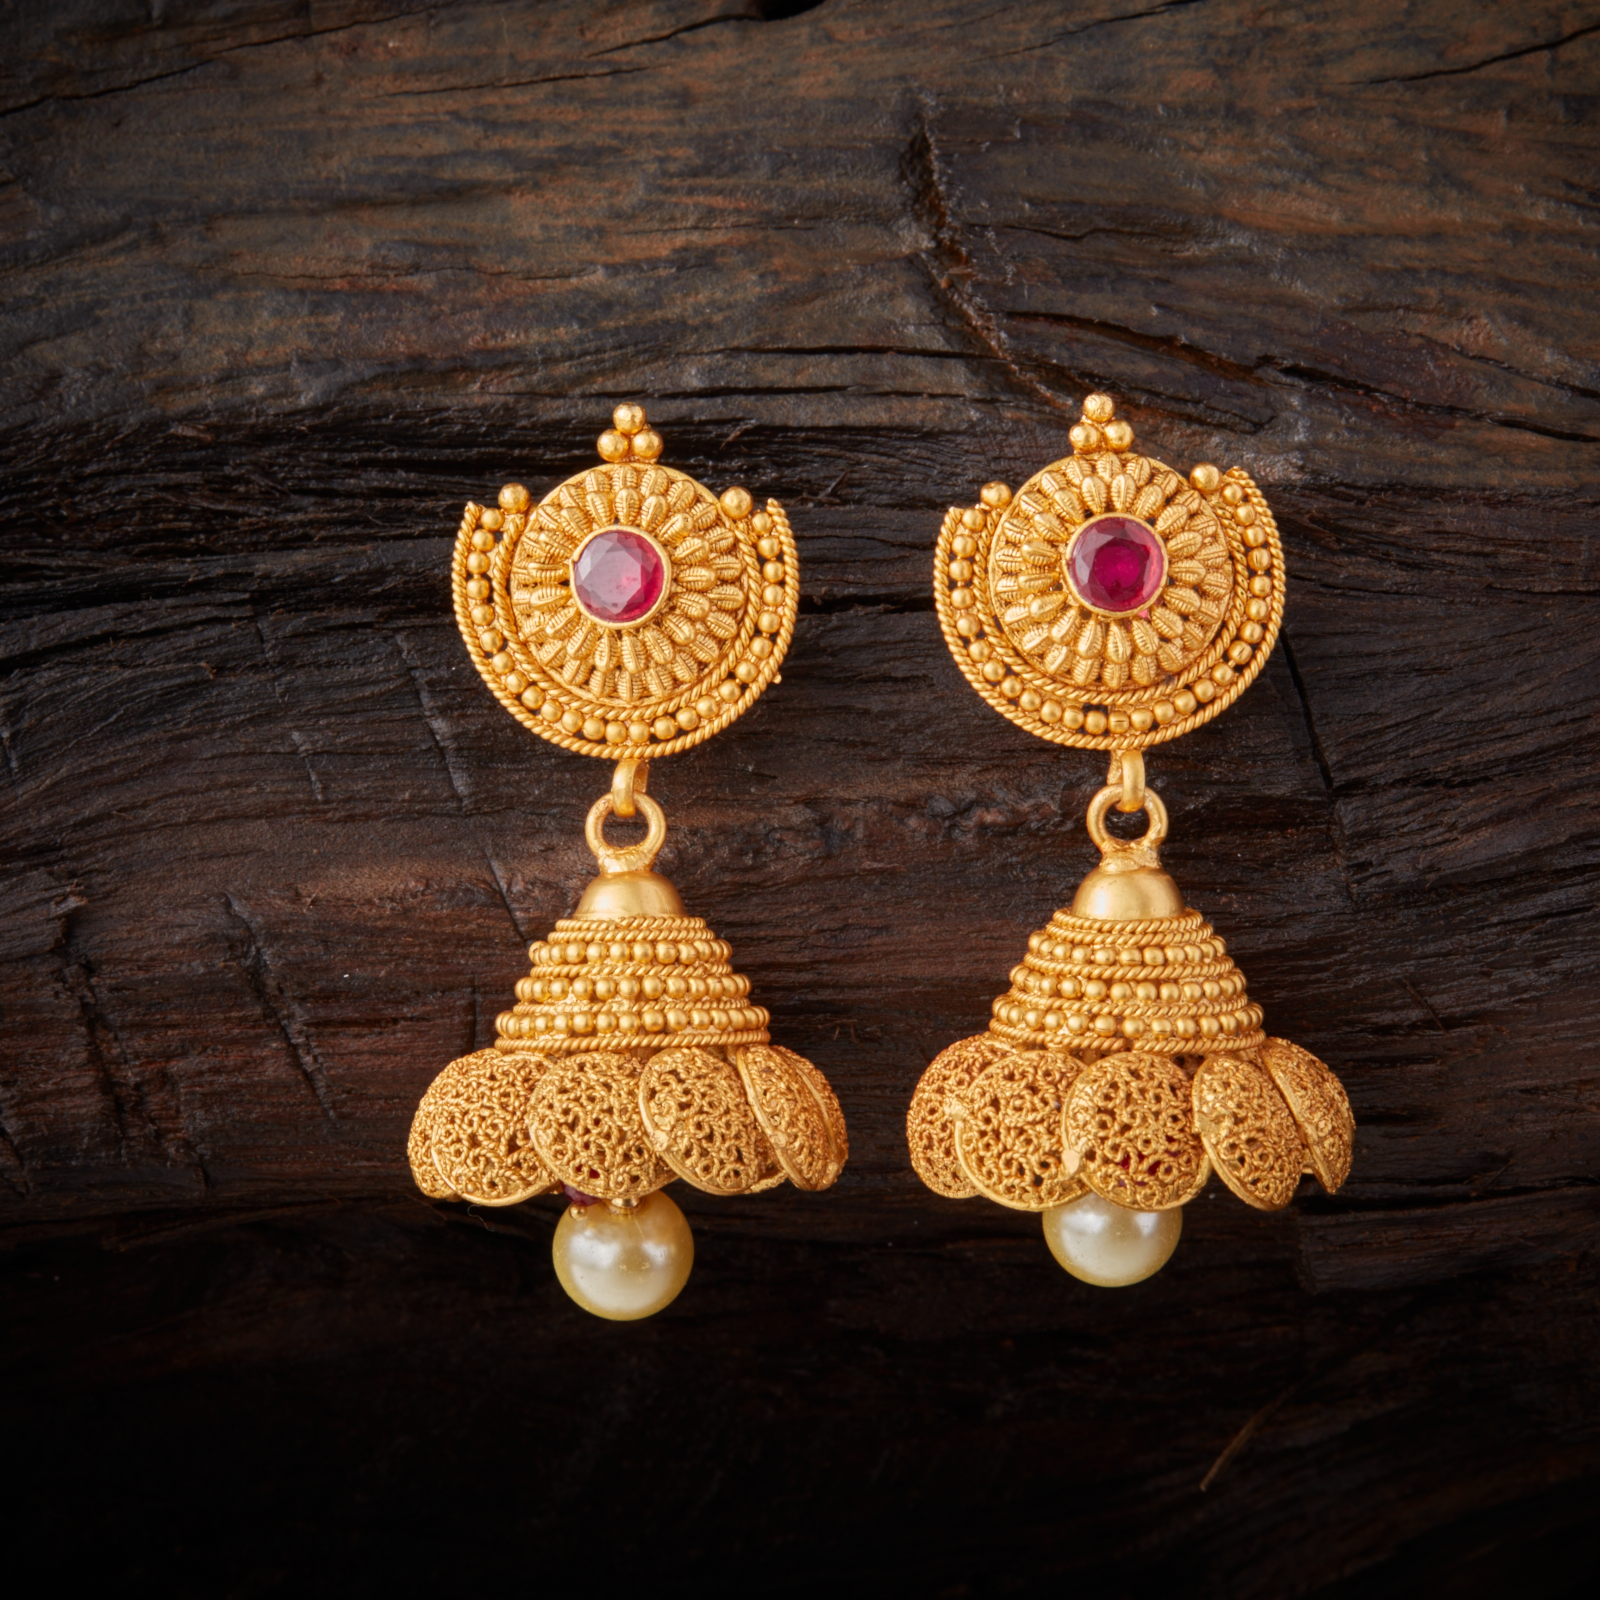 Conventional Designed Antique Jhumka Earrings studded with